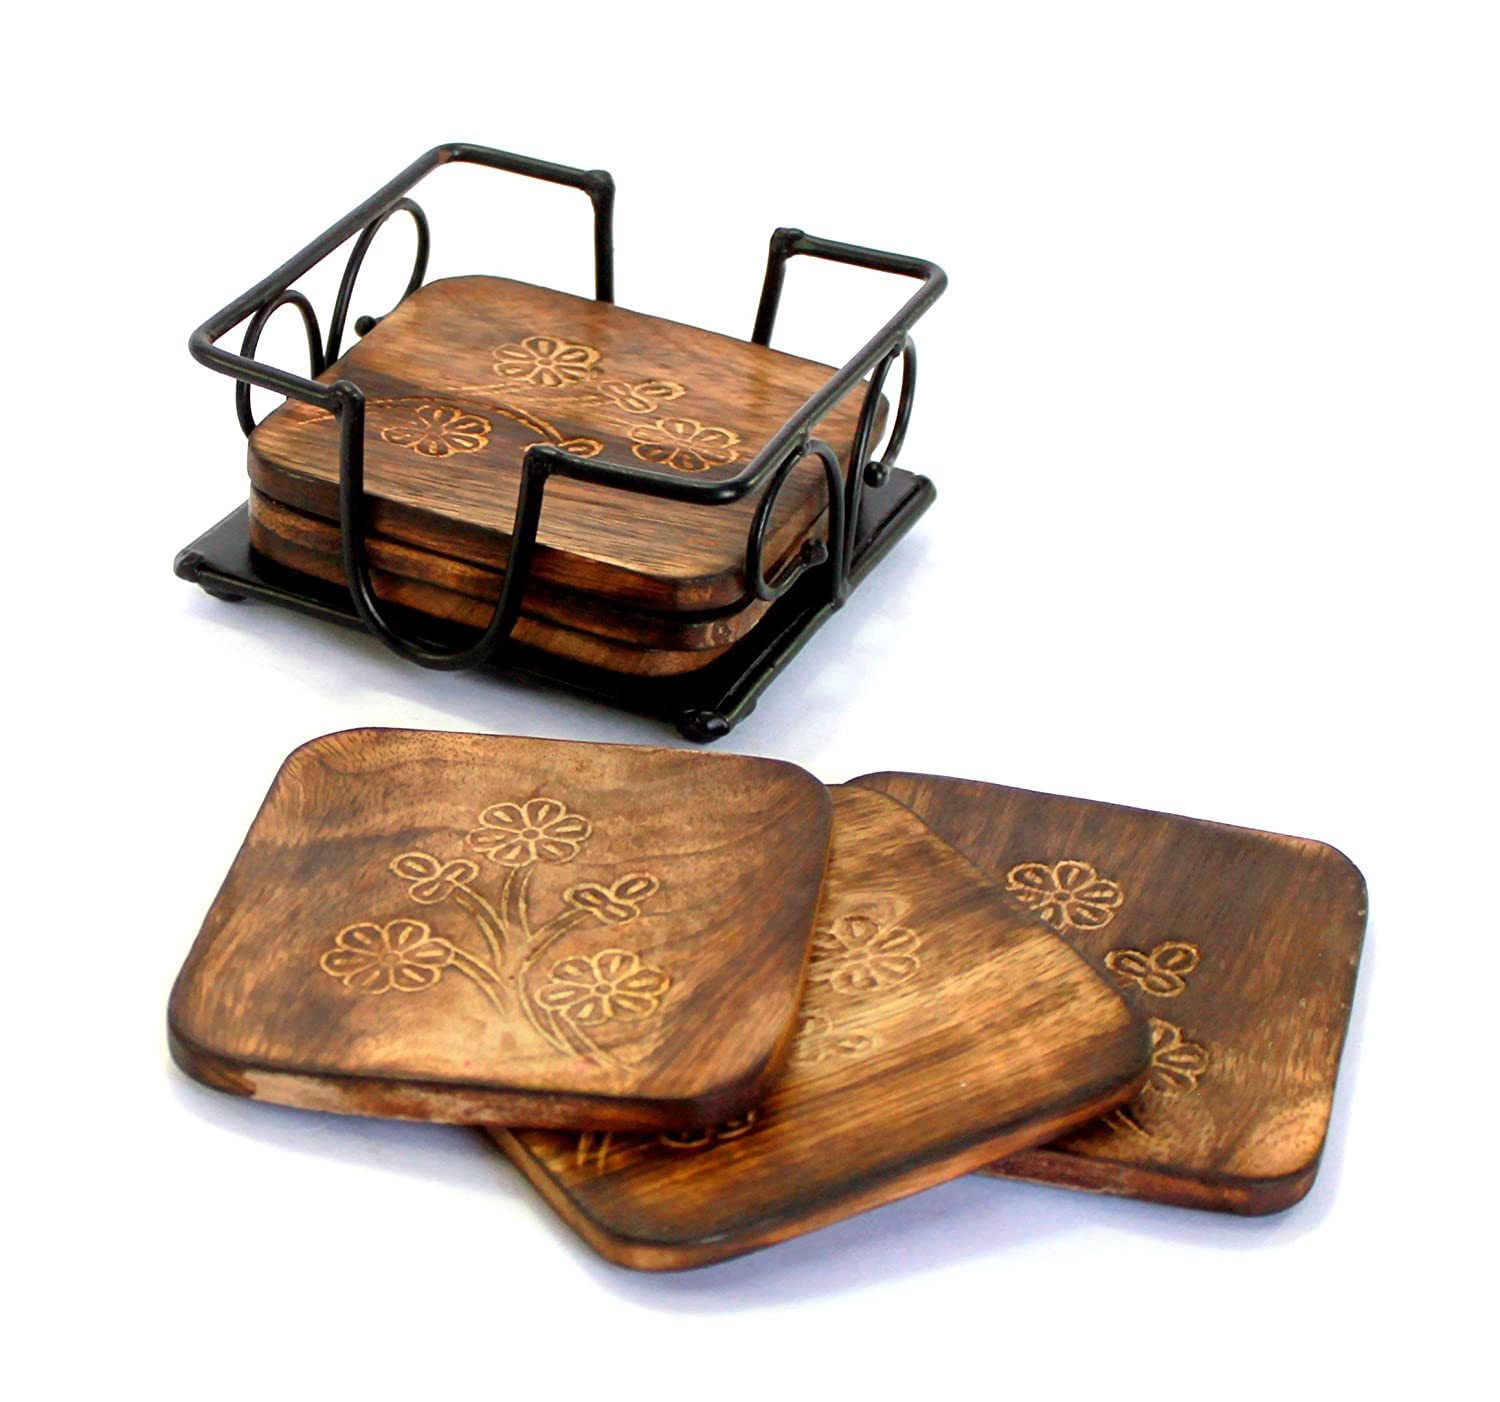 Handmade wooden coaster set of 4 Unique table decoration Cool party decoration Cute gift for mother Home wooden decor Patterned coasters